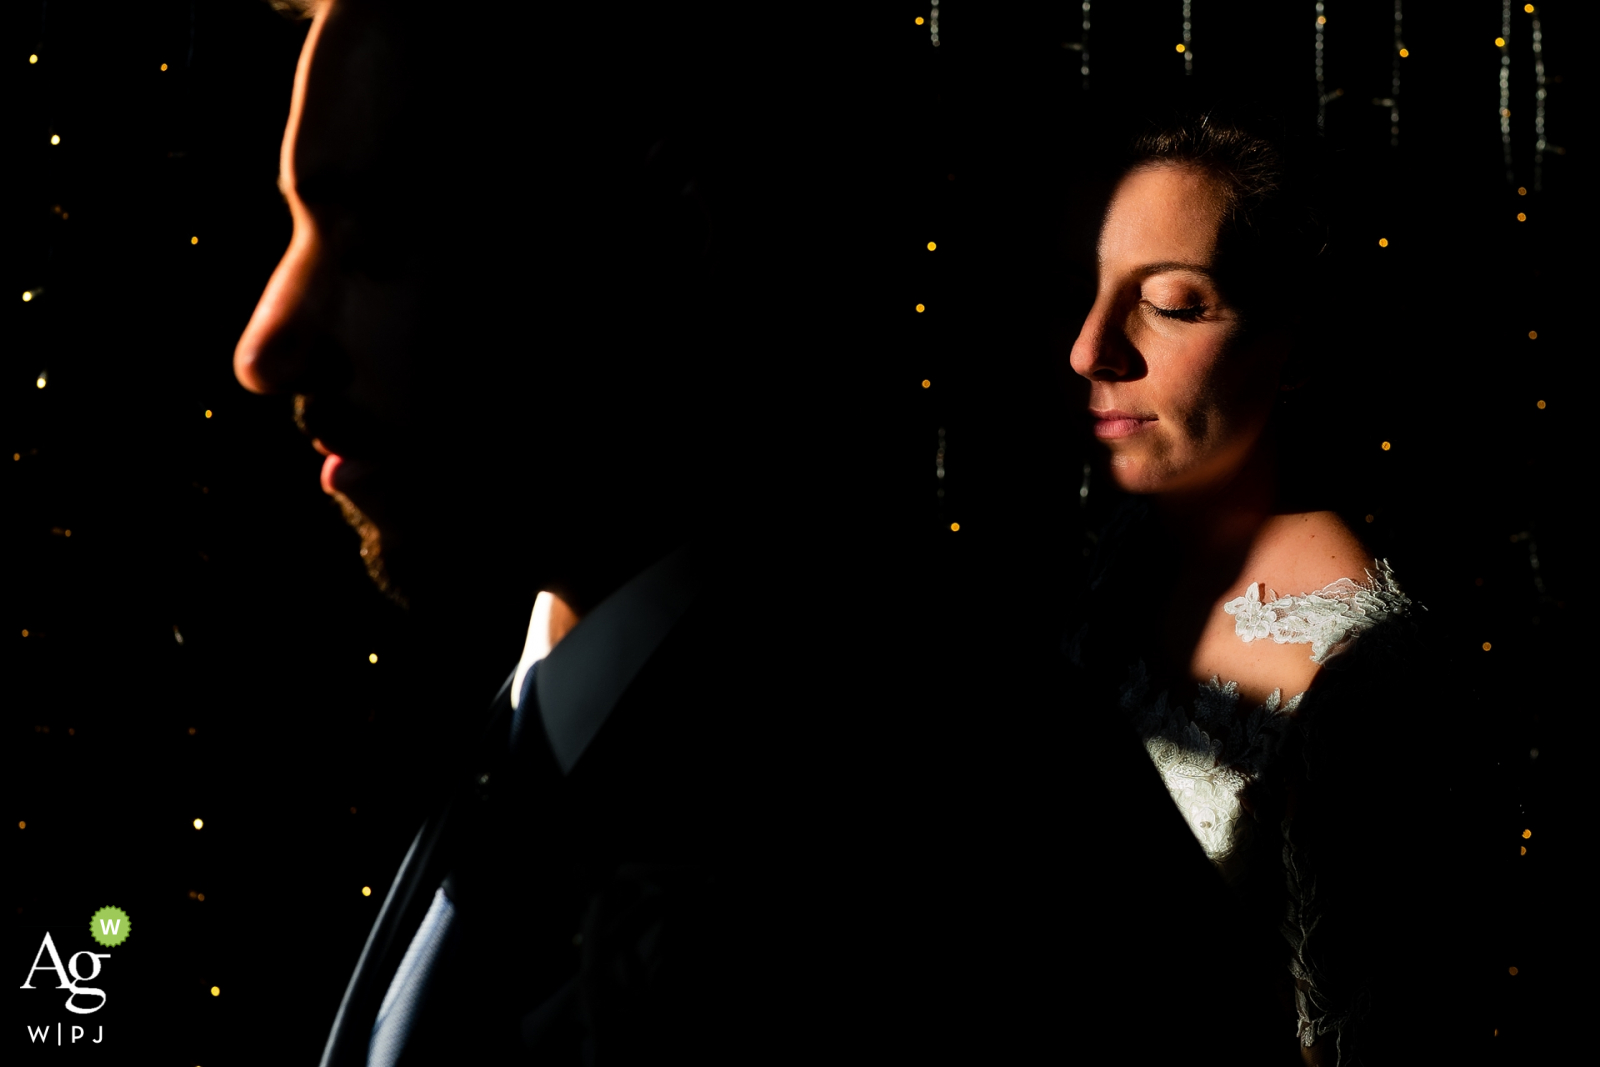 Stanjel Castle, Slovenia artistic wedding couple portrait making good use of the available Lights and shadows